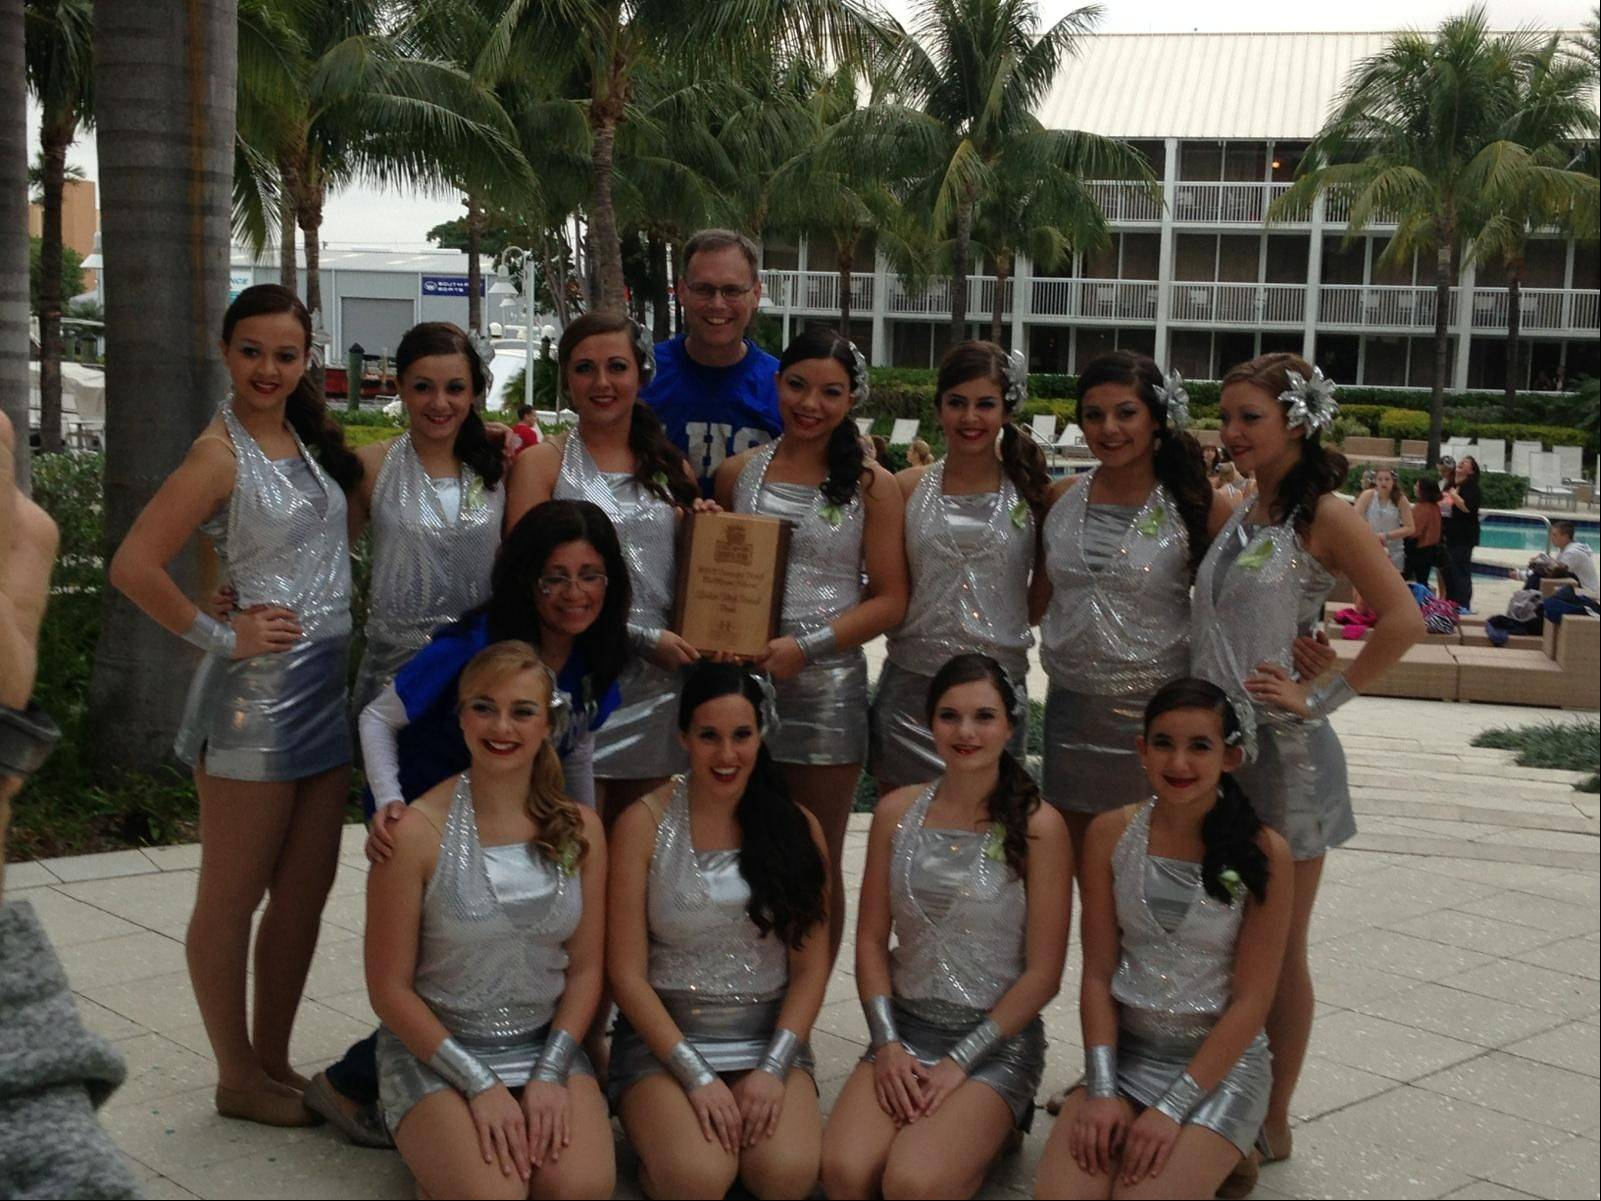 Photo courtesy of Laura NewmeyerLarkin High School Poms with Principal, Dr. Jon Tuin before the Orange Bowl Tuesday January 1, 2013.